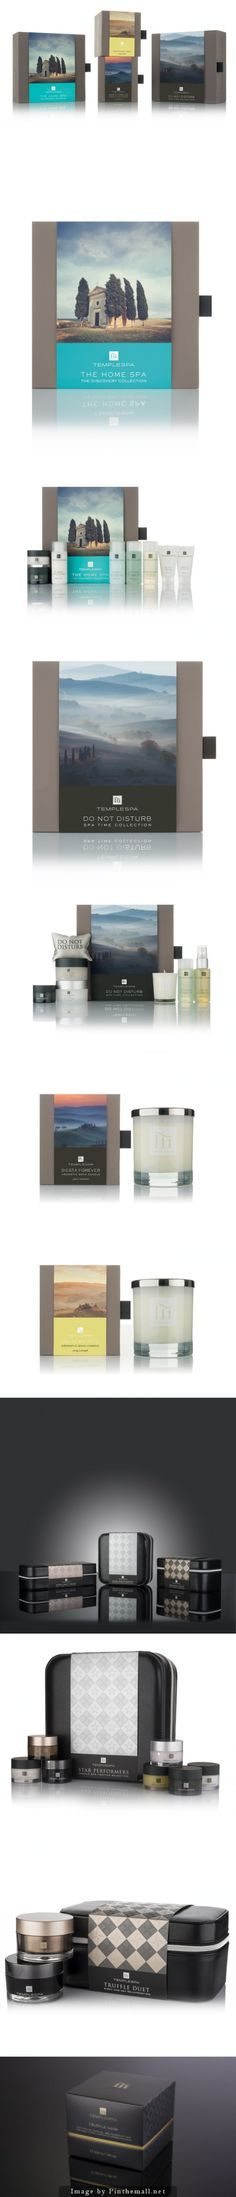 Very pretty gift packaging concepts curated by Packaging Diva PD created via http://www.coroflot.com/john_asbridge/Gift-Packaging